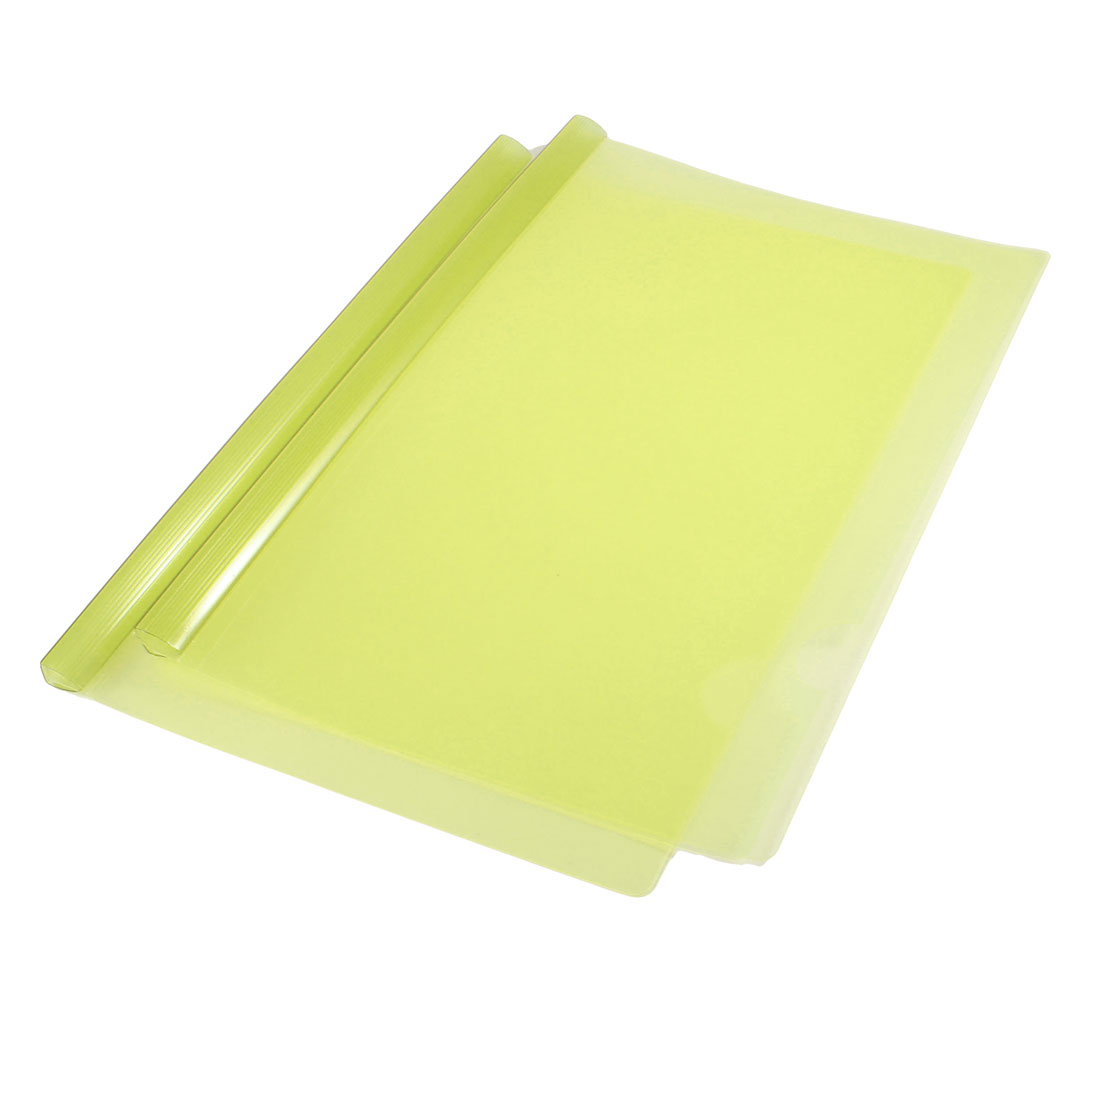 2 Pcs Slide Binder Bar Yellow Plastic File Folder Holder for A4 Papers